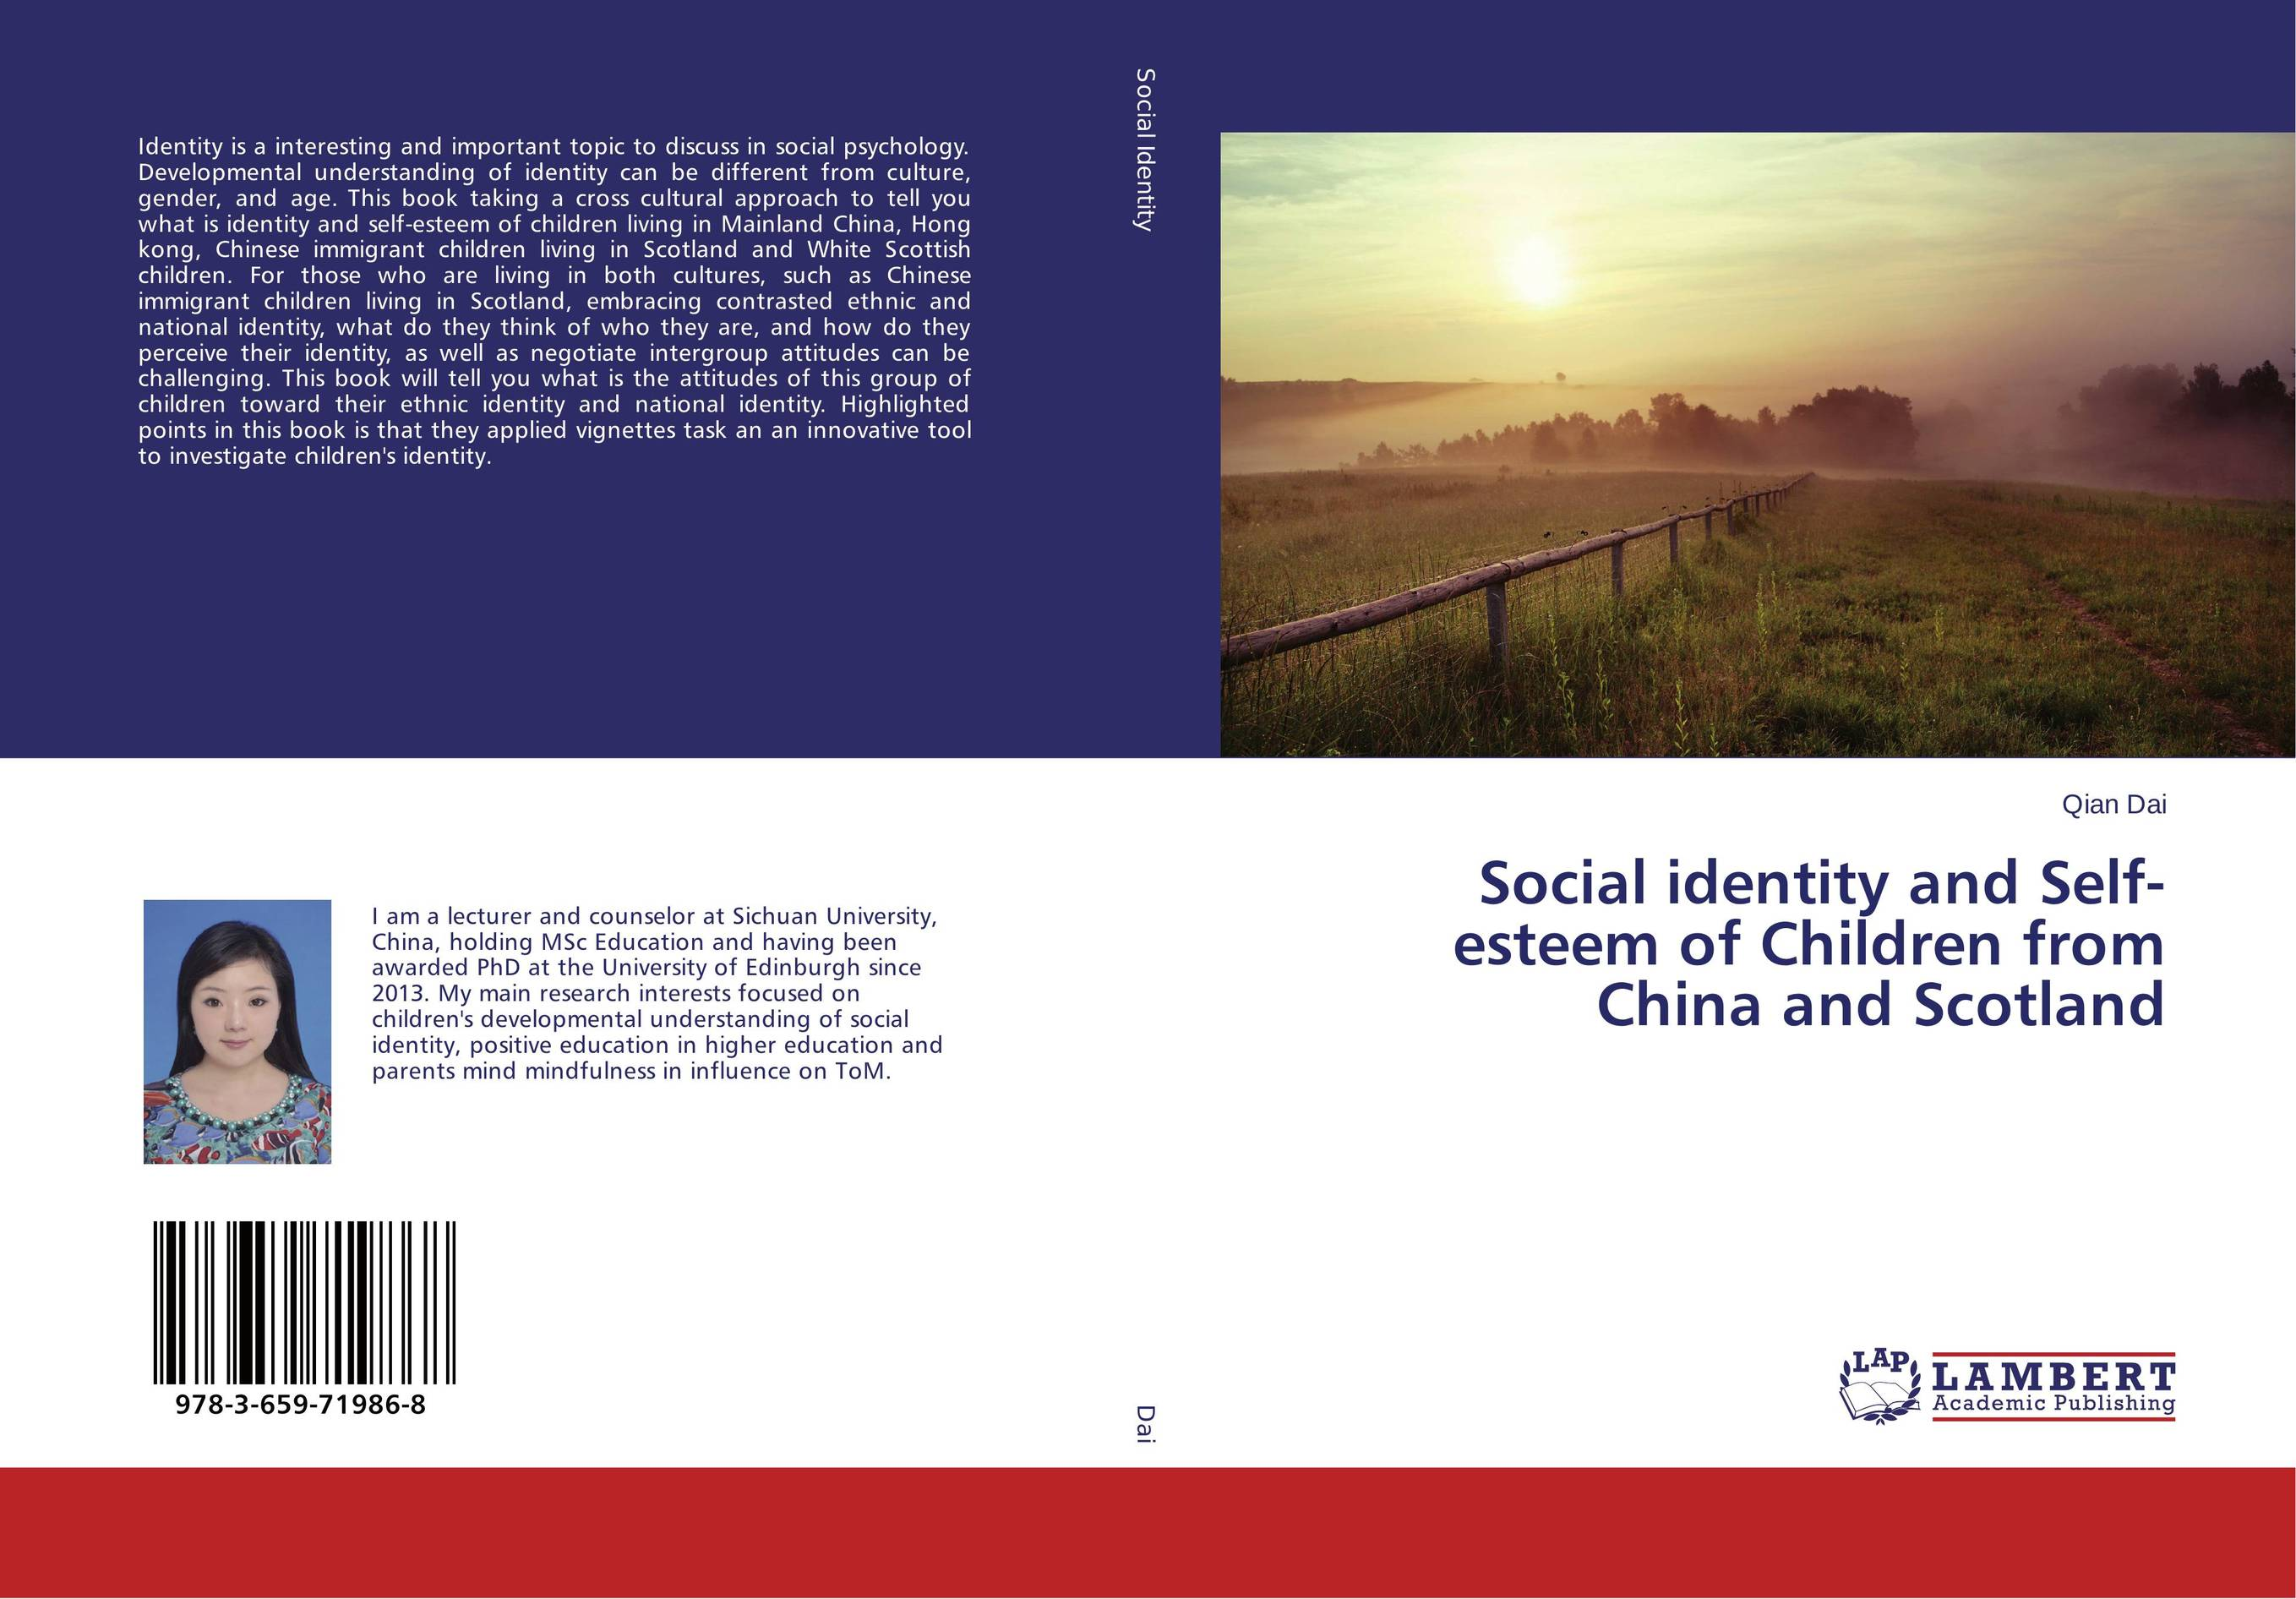 Social identity and Self-esteem of Children from China and Scotland edited by simon franklin and emma widdis national identity in russian culture an introduction